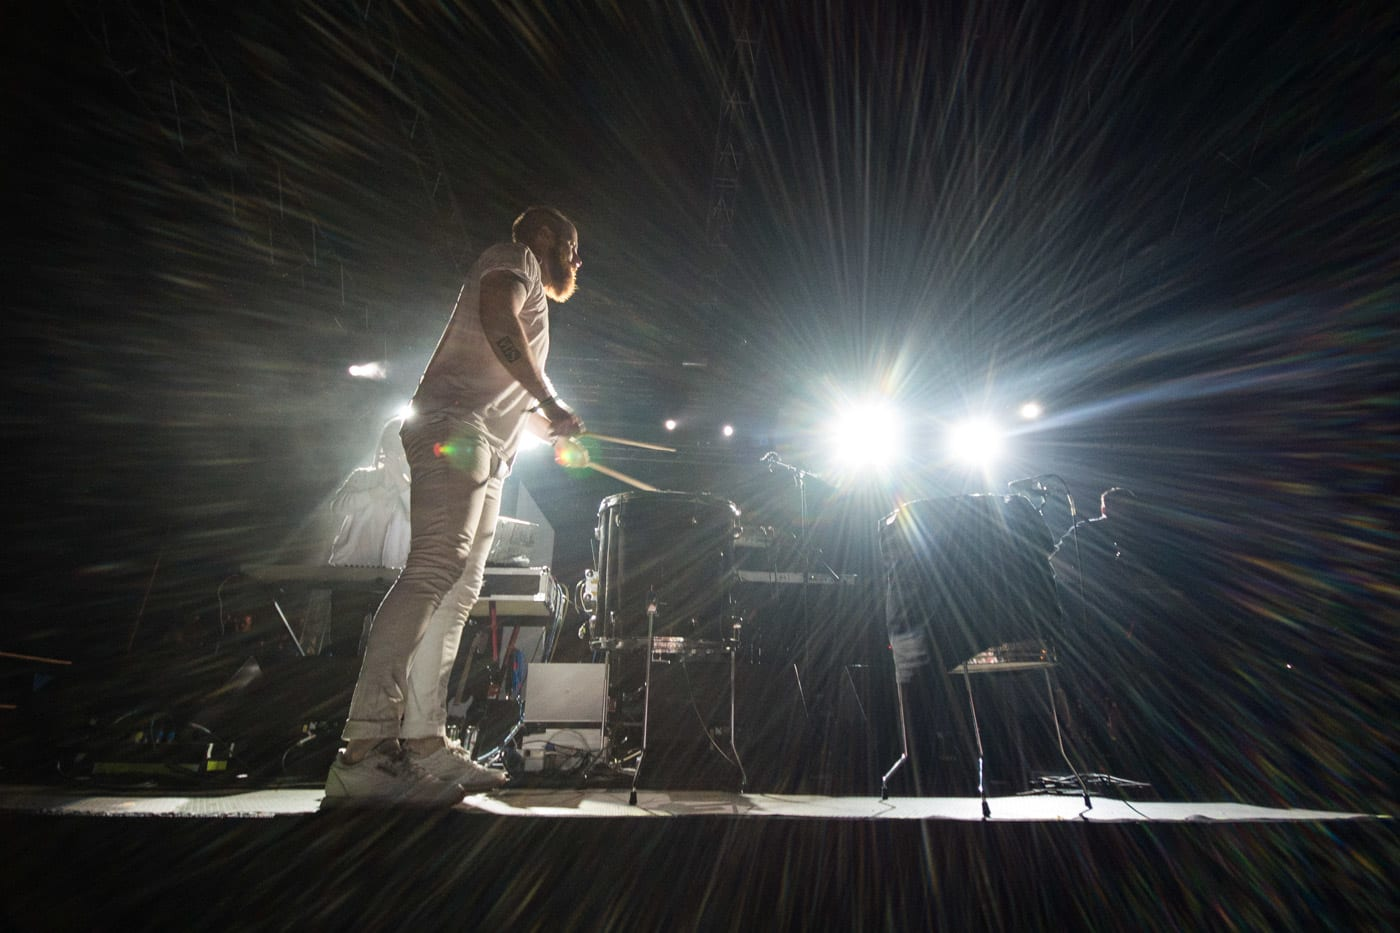 le-galaxie-at-sea-sessions-by-sean-smyth-20-6-14-37-of-43